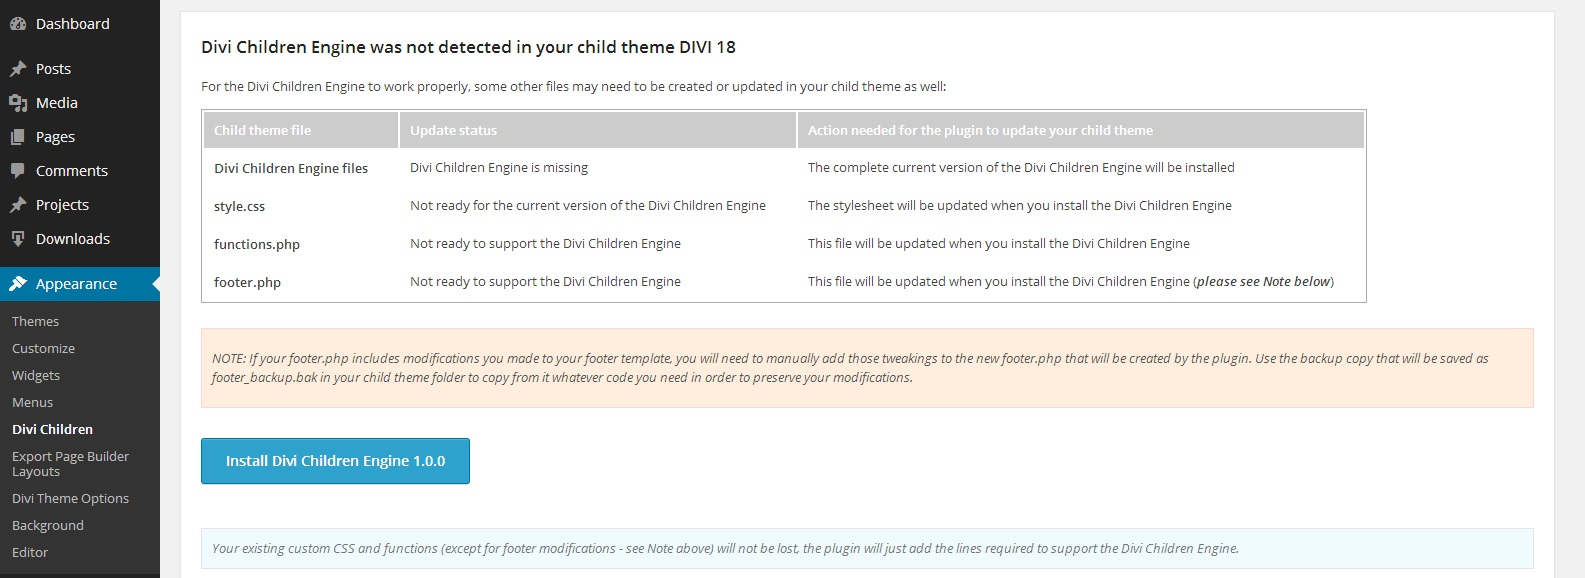 customize-divi-update-divi-children-engine-check